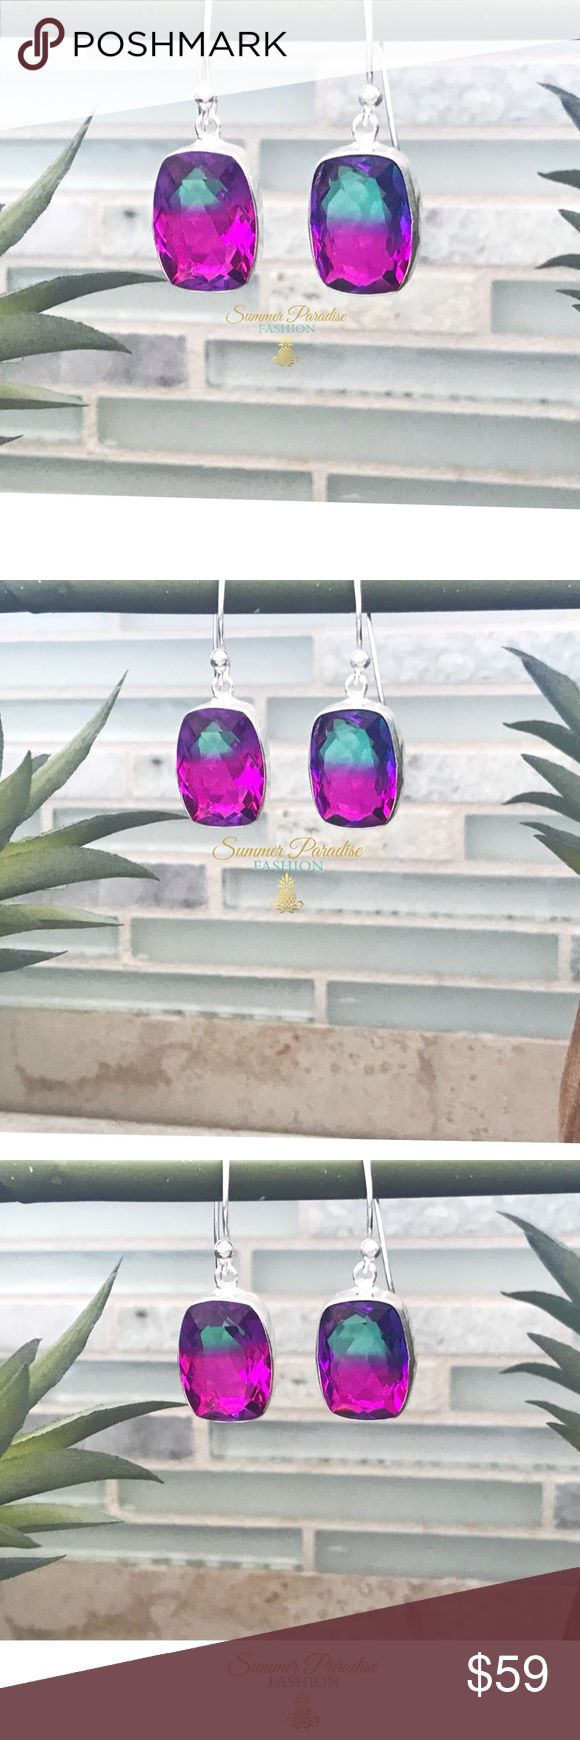 NWT 925 SILVER TOURMALINE EARRINGS Stunning handmade 4 carat, 925 Stamped Silver Bi-Color Tourmaline Earrings. 1.4 inch drop length, tourmaline is 0.75 x 0.5 inches.  ⭐️Storage pouch included.                                                                                     ⭐️Priced for offers! Open to reasonable offers! TAGS: tourmaline earrings, 925 sterling silver, handmade earrings Summer Paradise Jewelry Earrings #SterlingSilverStorage